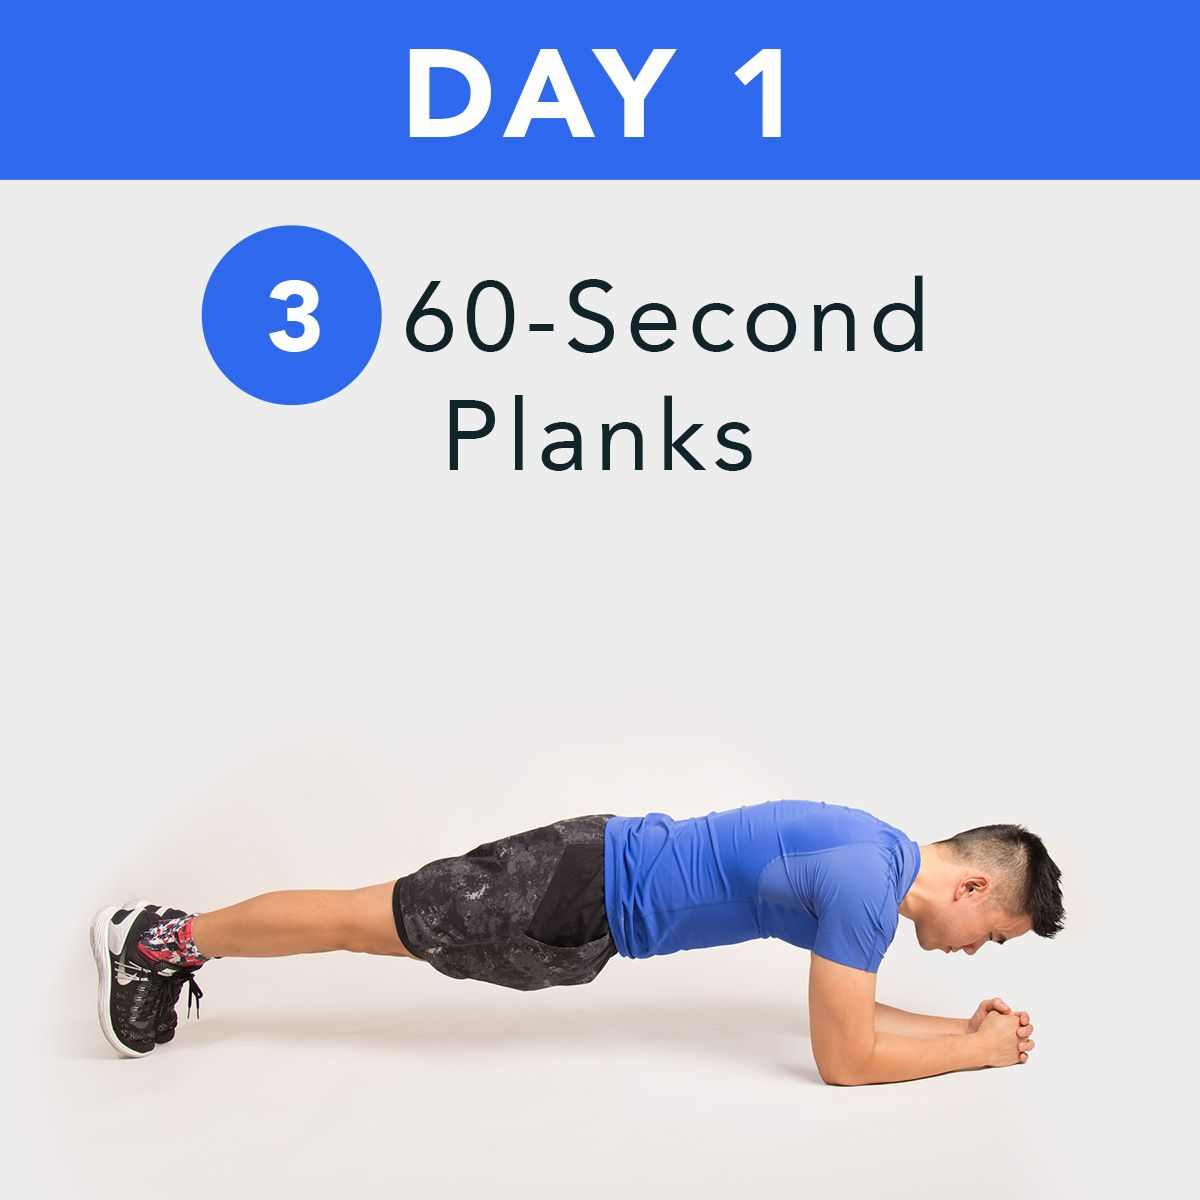 Join Greatists 31-Day Burpee Challenge Join Greatists 31-Day Burpee Challenge new picture